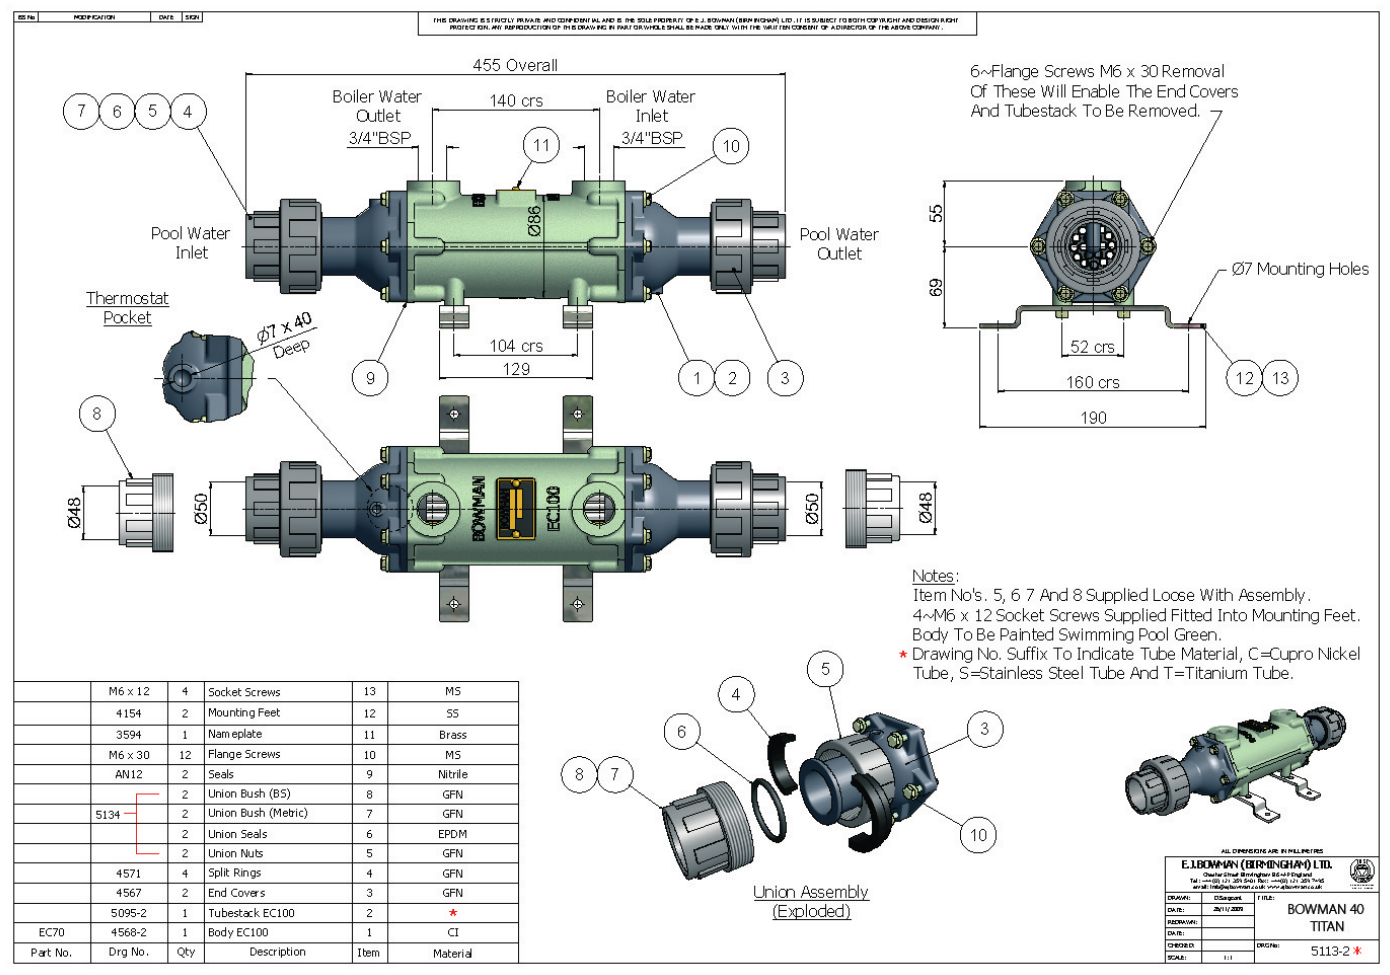 Drawing of the heat exchanger BOWMAN 40 Titan